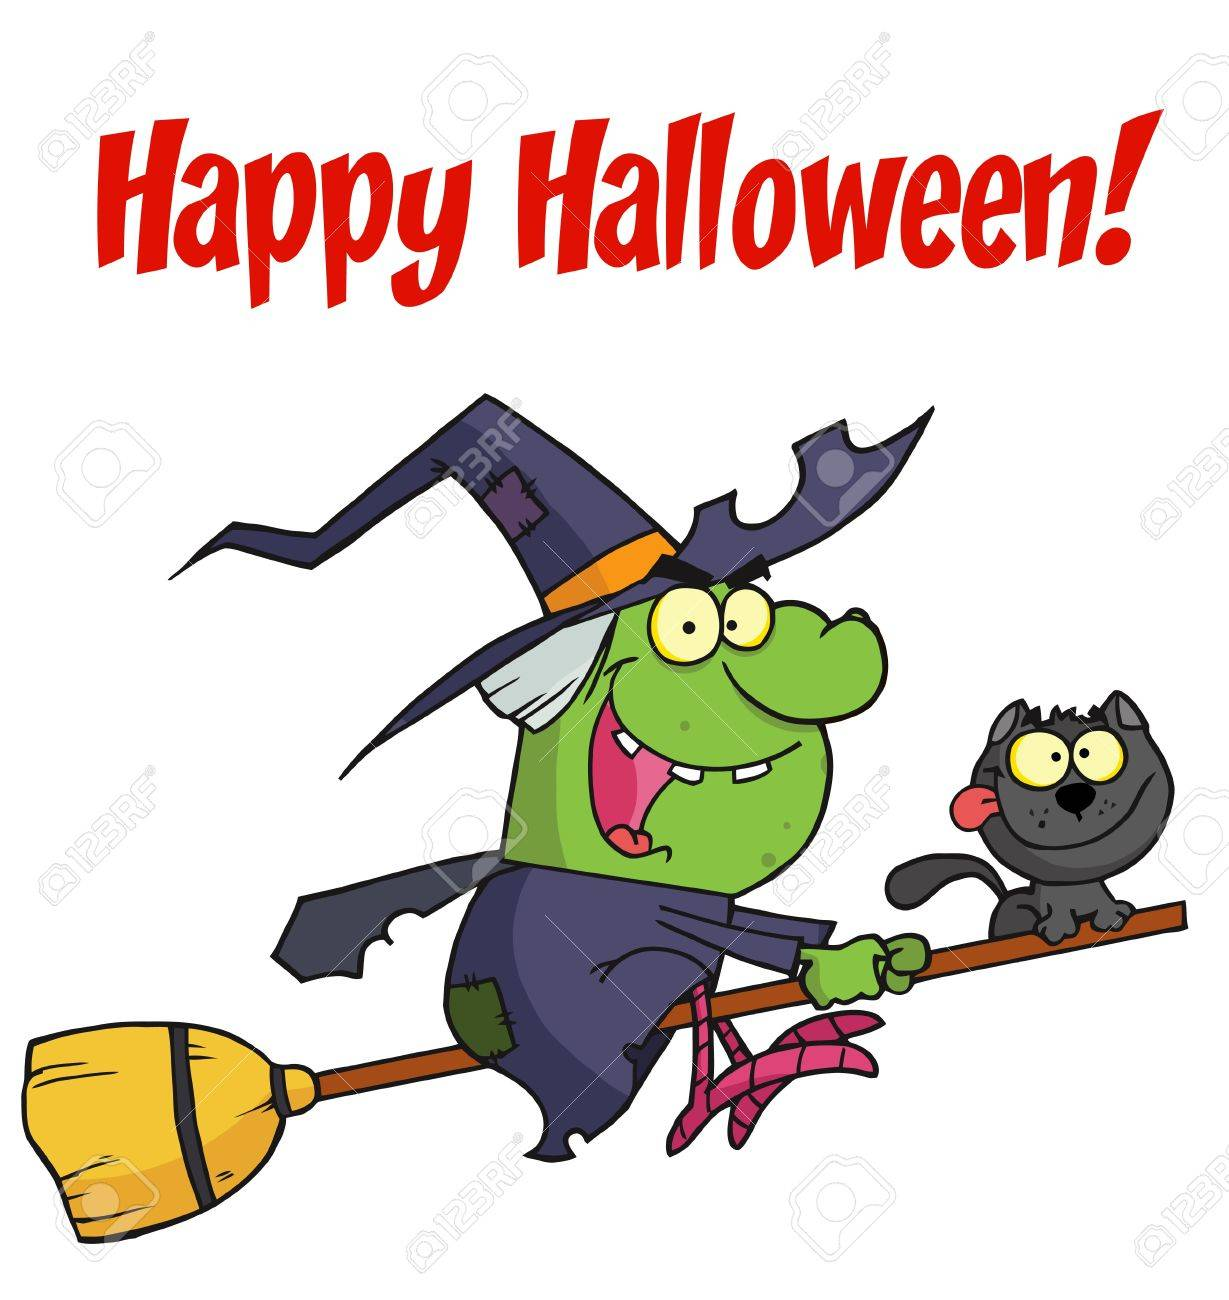 happy halloween greeting over a green witch stock vector 6946460 - Halloween Witch Cartoon